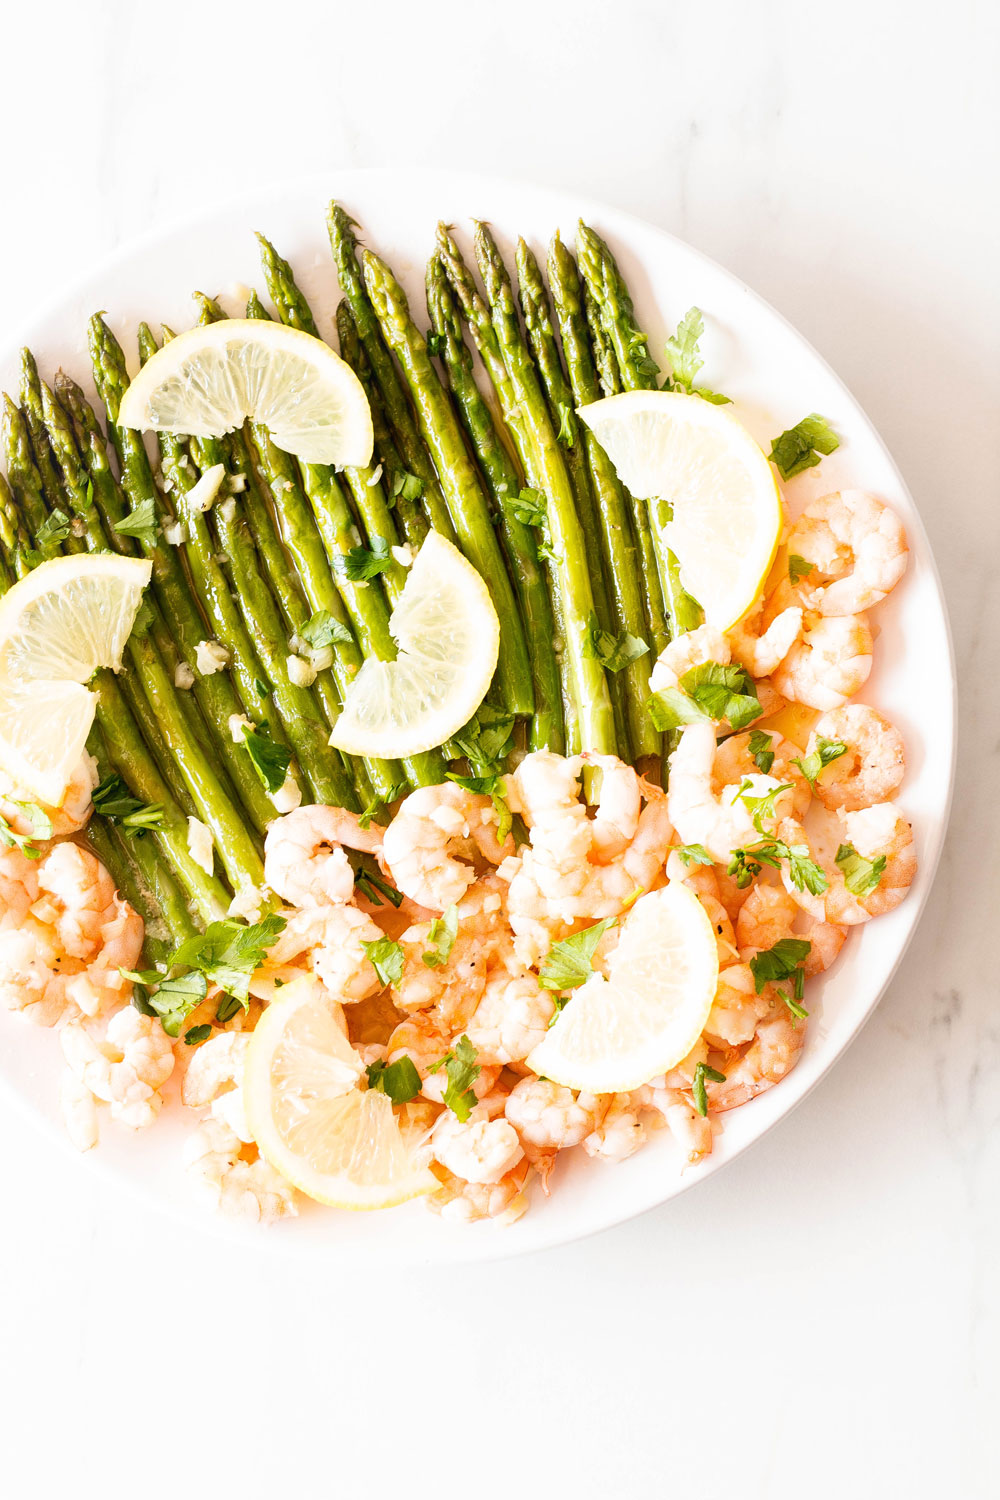 This Sauteed Garlic Shrimp with Asparagus recipe makes a healthy, quick, and delicious dinner! Packed with vitamins, minerals, protein, and fiber, it is going to become your new favorite seafood dish! https://www.spotebi.com/recipes/sauteed-garlic-shrimp-asparagus/